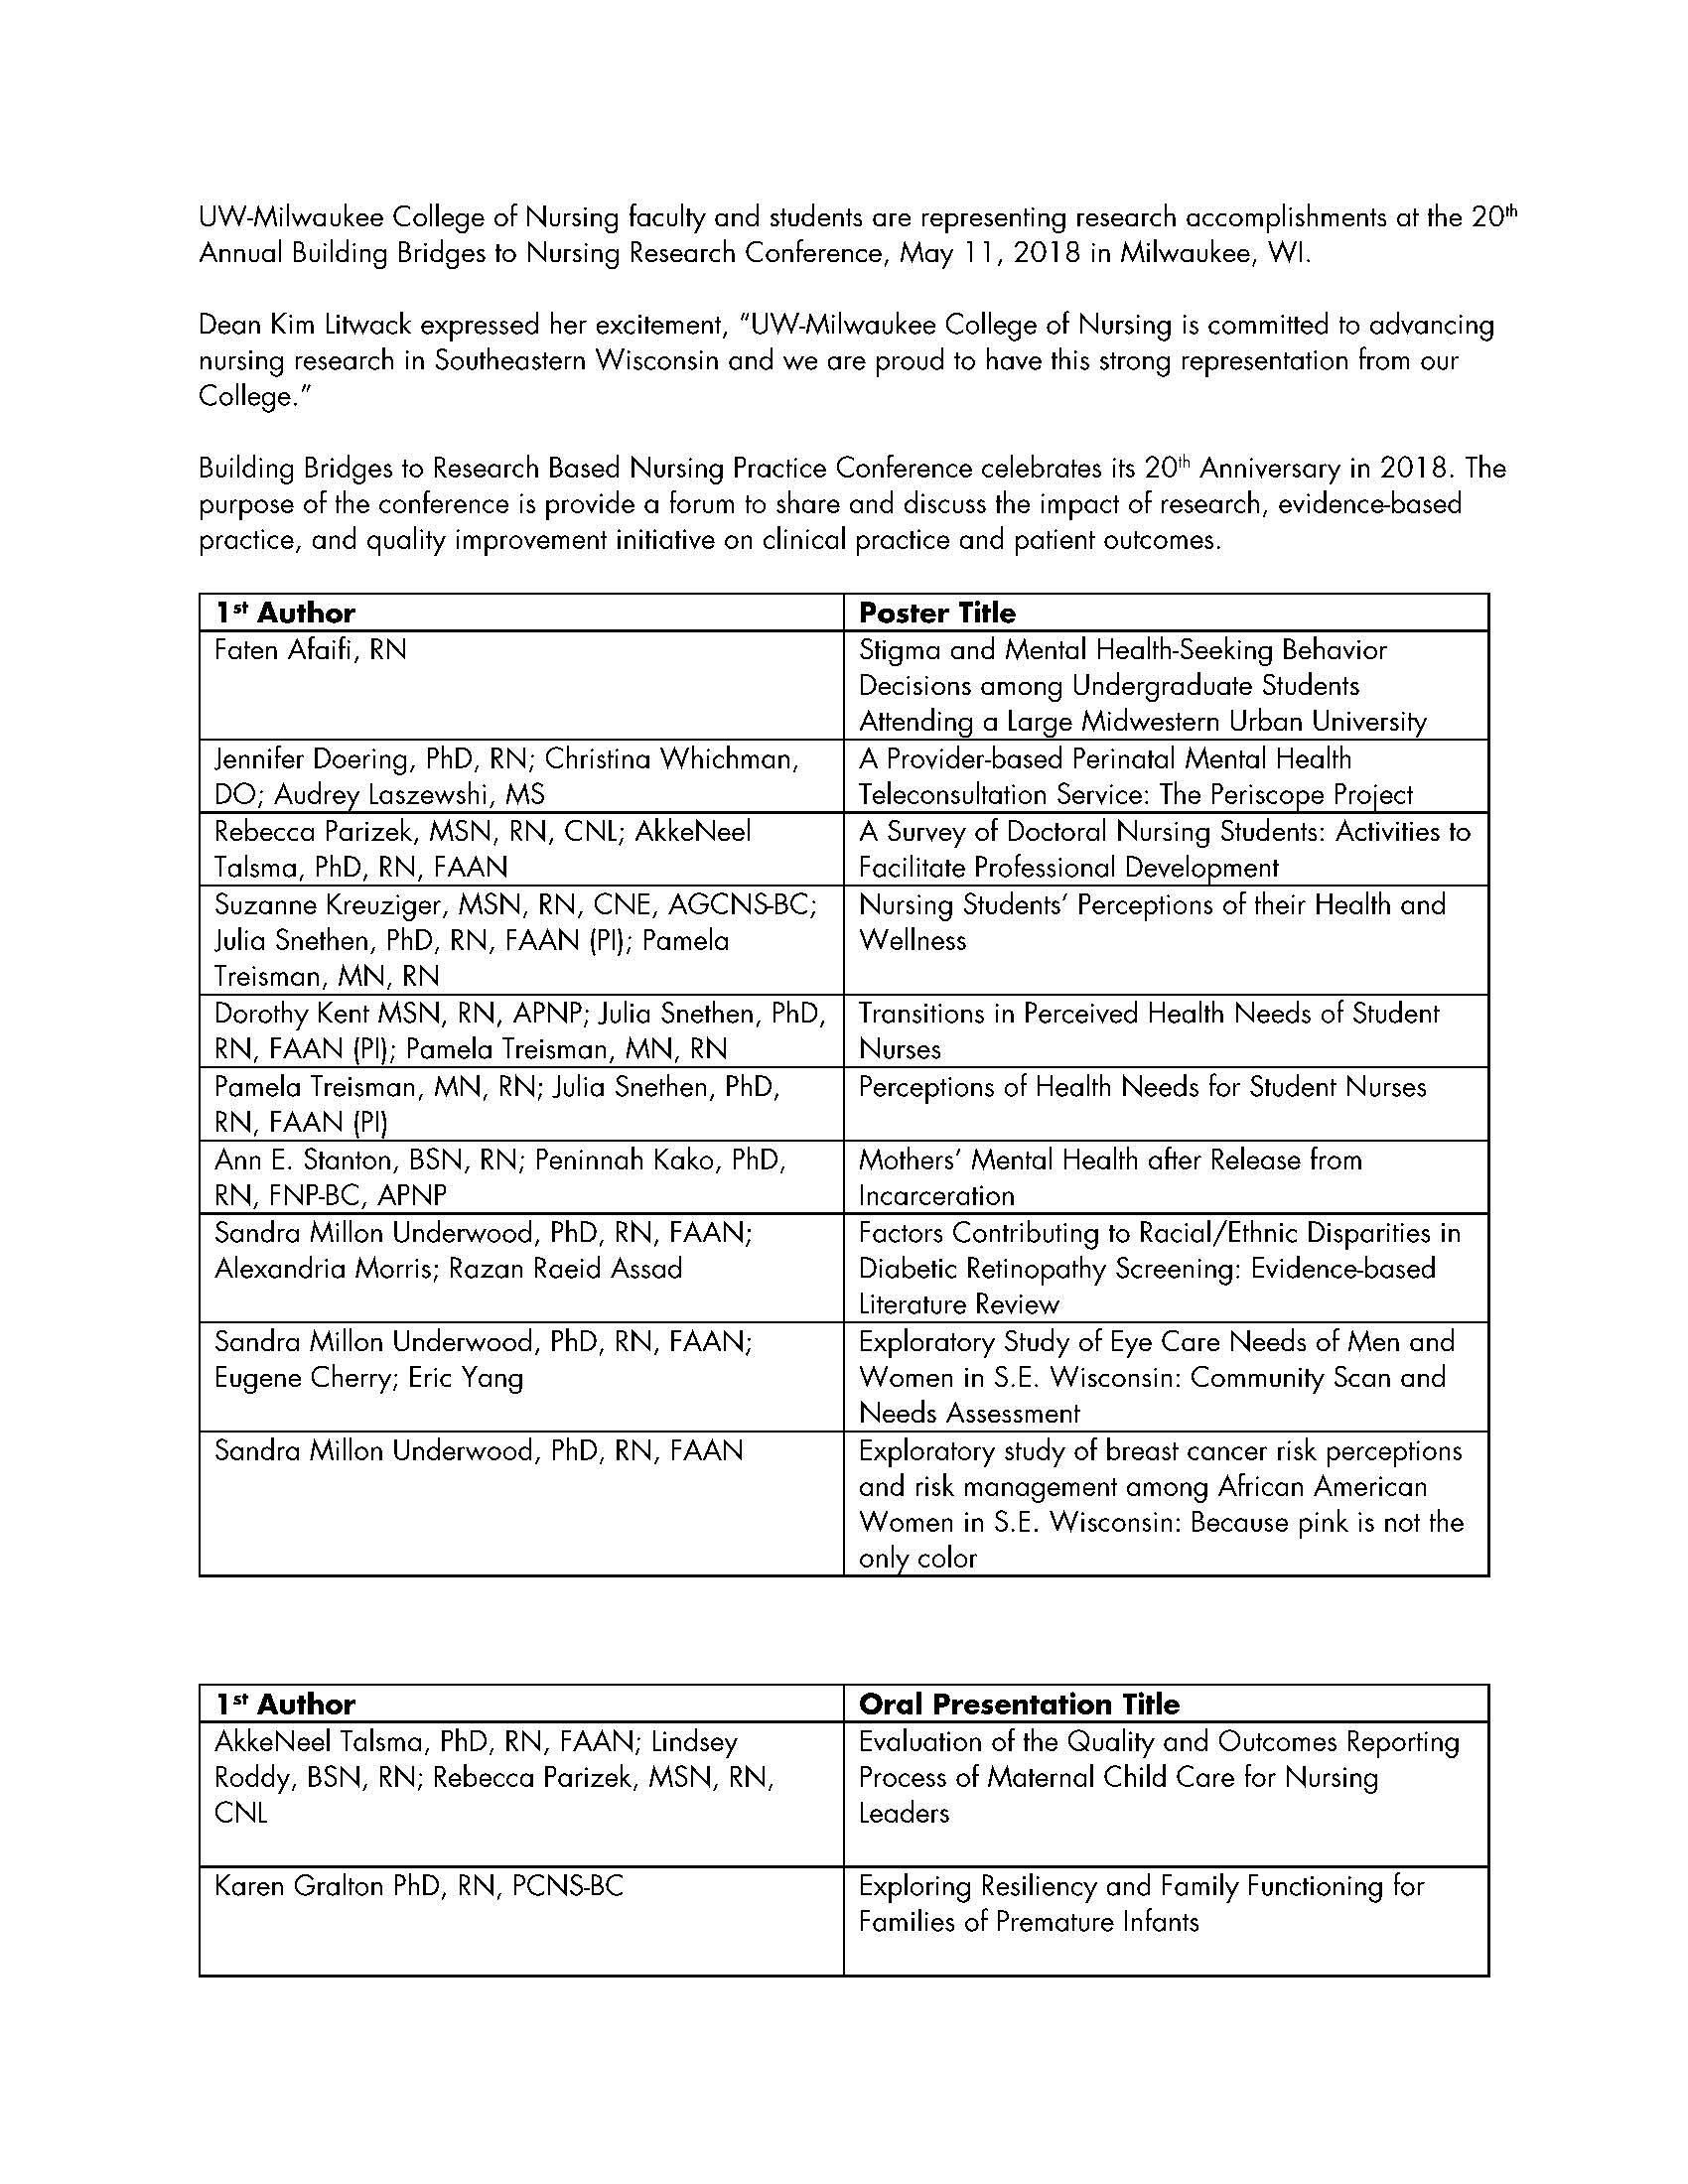 Greening The Environment Essay  Hotel Dal Rim Essay Critical Thinking Klaas Kraaye Global Warming Essay In English also Proposal Example Essay  Essays On Science And Religion